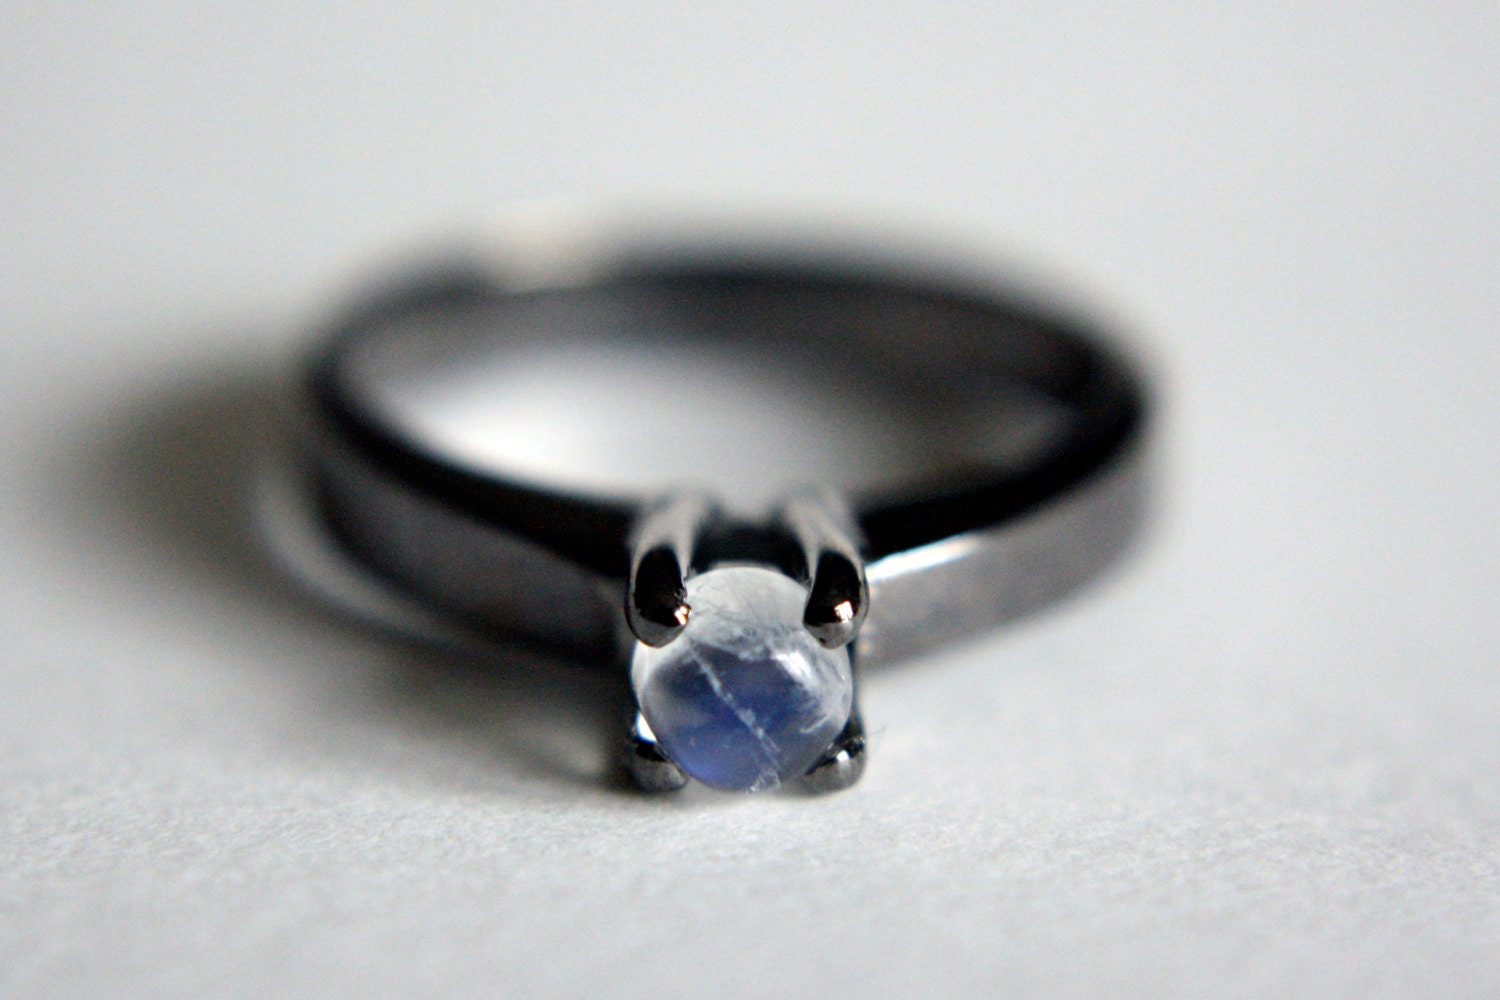 Moonstone Solitaire Ring in Black Rhodium sterling silver